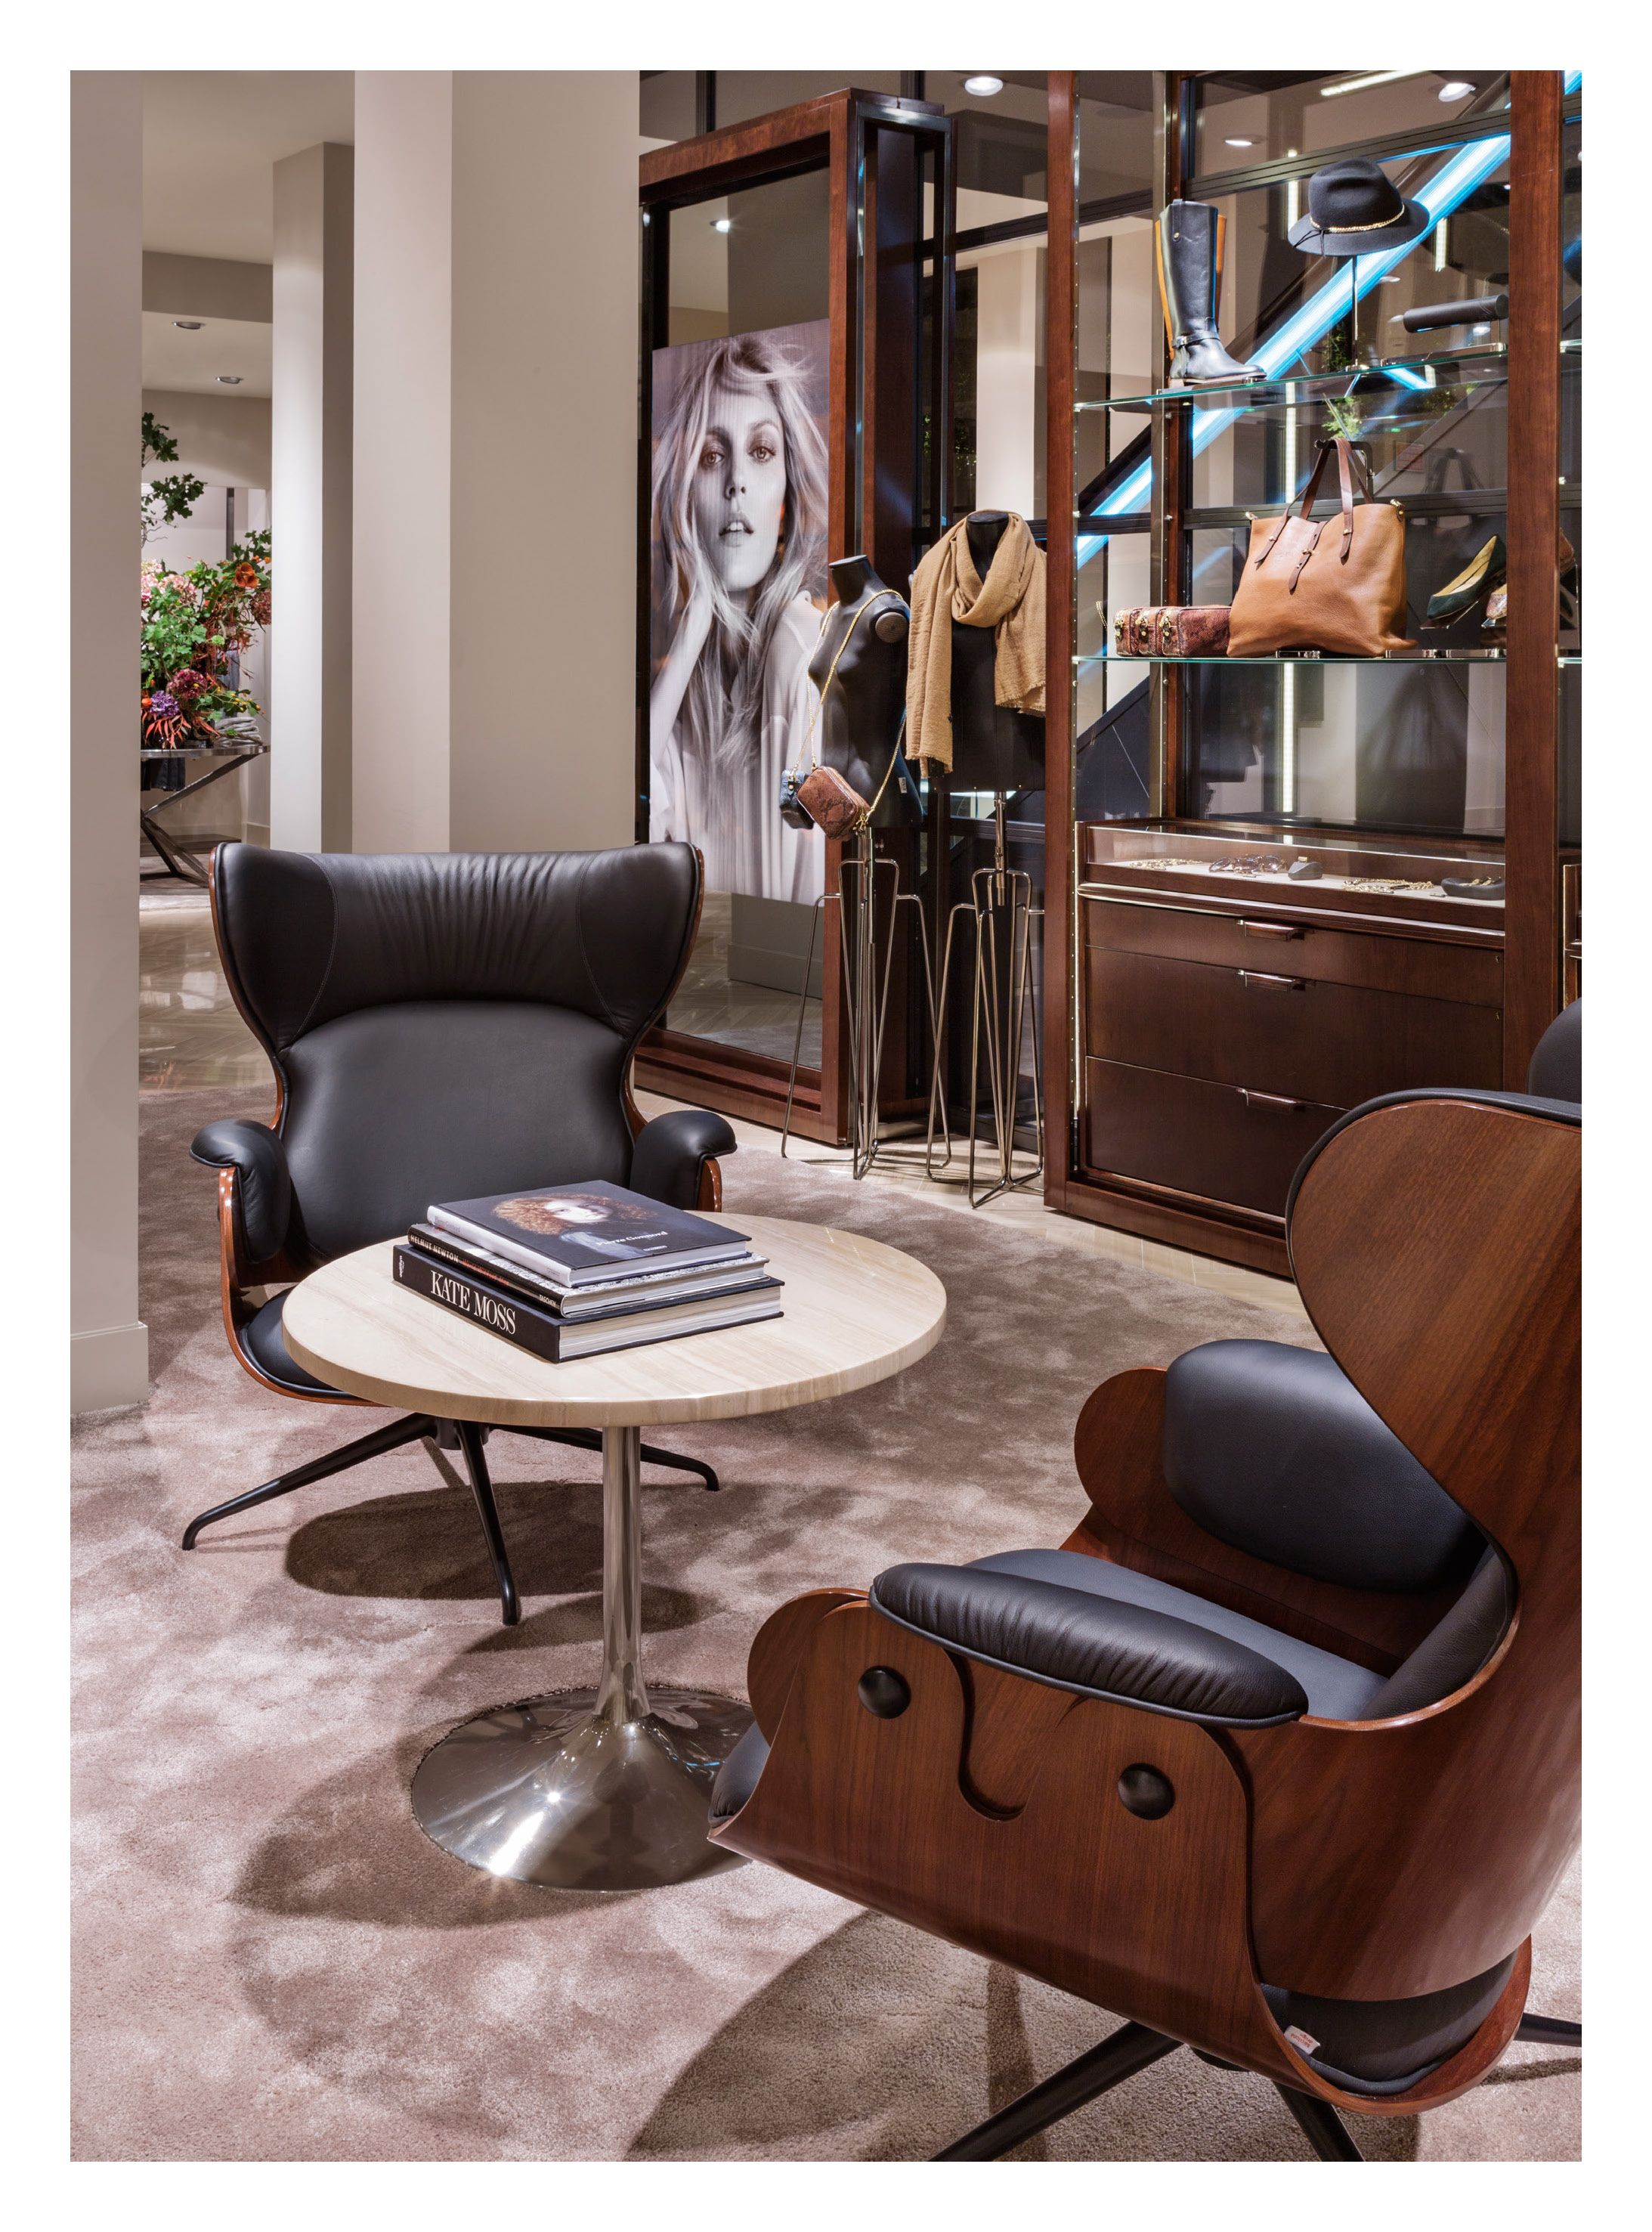 Massimo Dutti Flagship Store Serrano 48 Madrid Ground Floor Women S Collection Diseño Interior De Tienda Interiores De Tienda Decoracion De Interiores